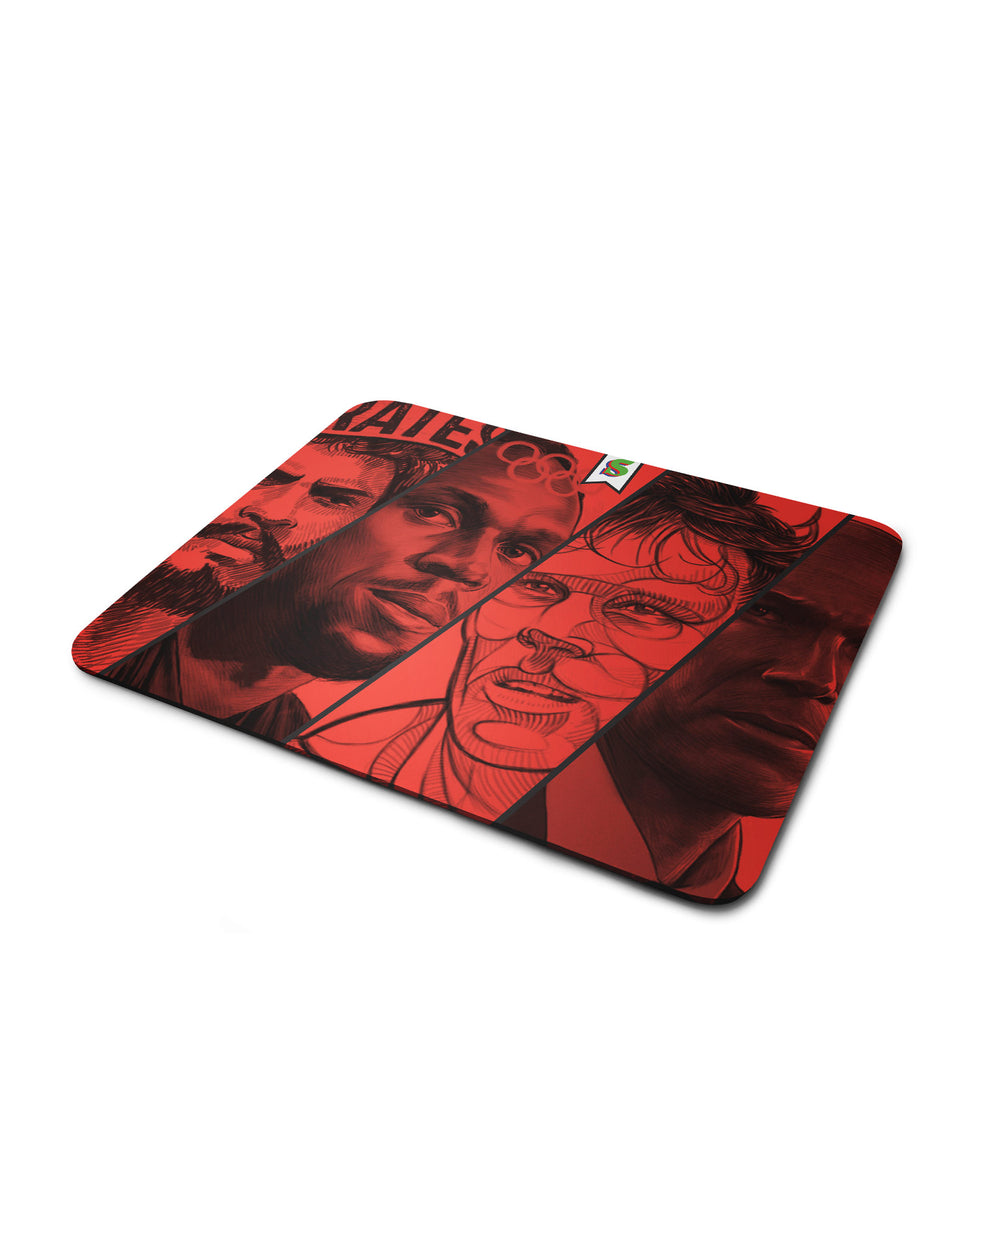 Studio Mousepad